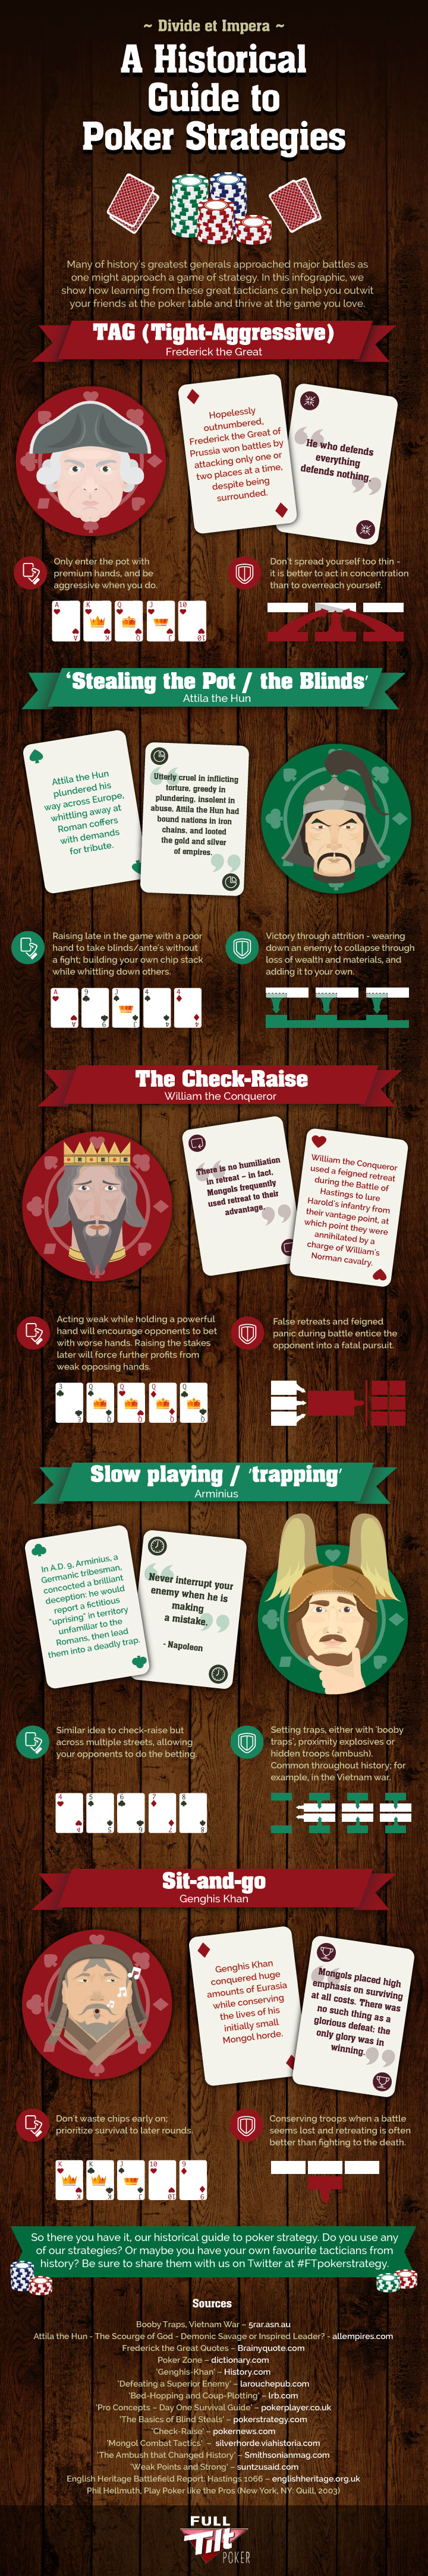 Divide Et Impera: A Historical Guide to Poker Strategies